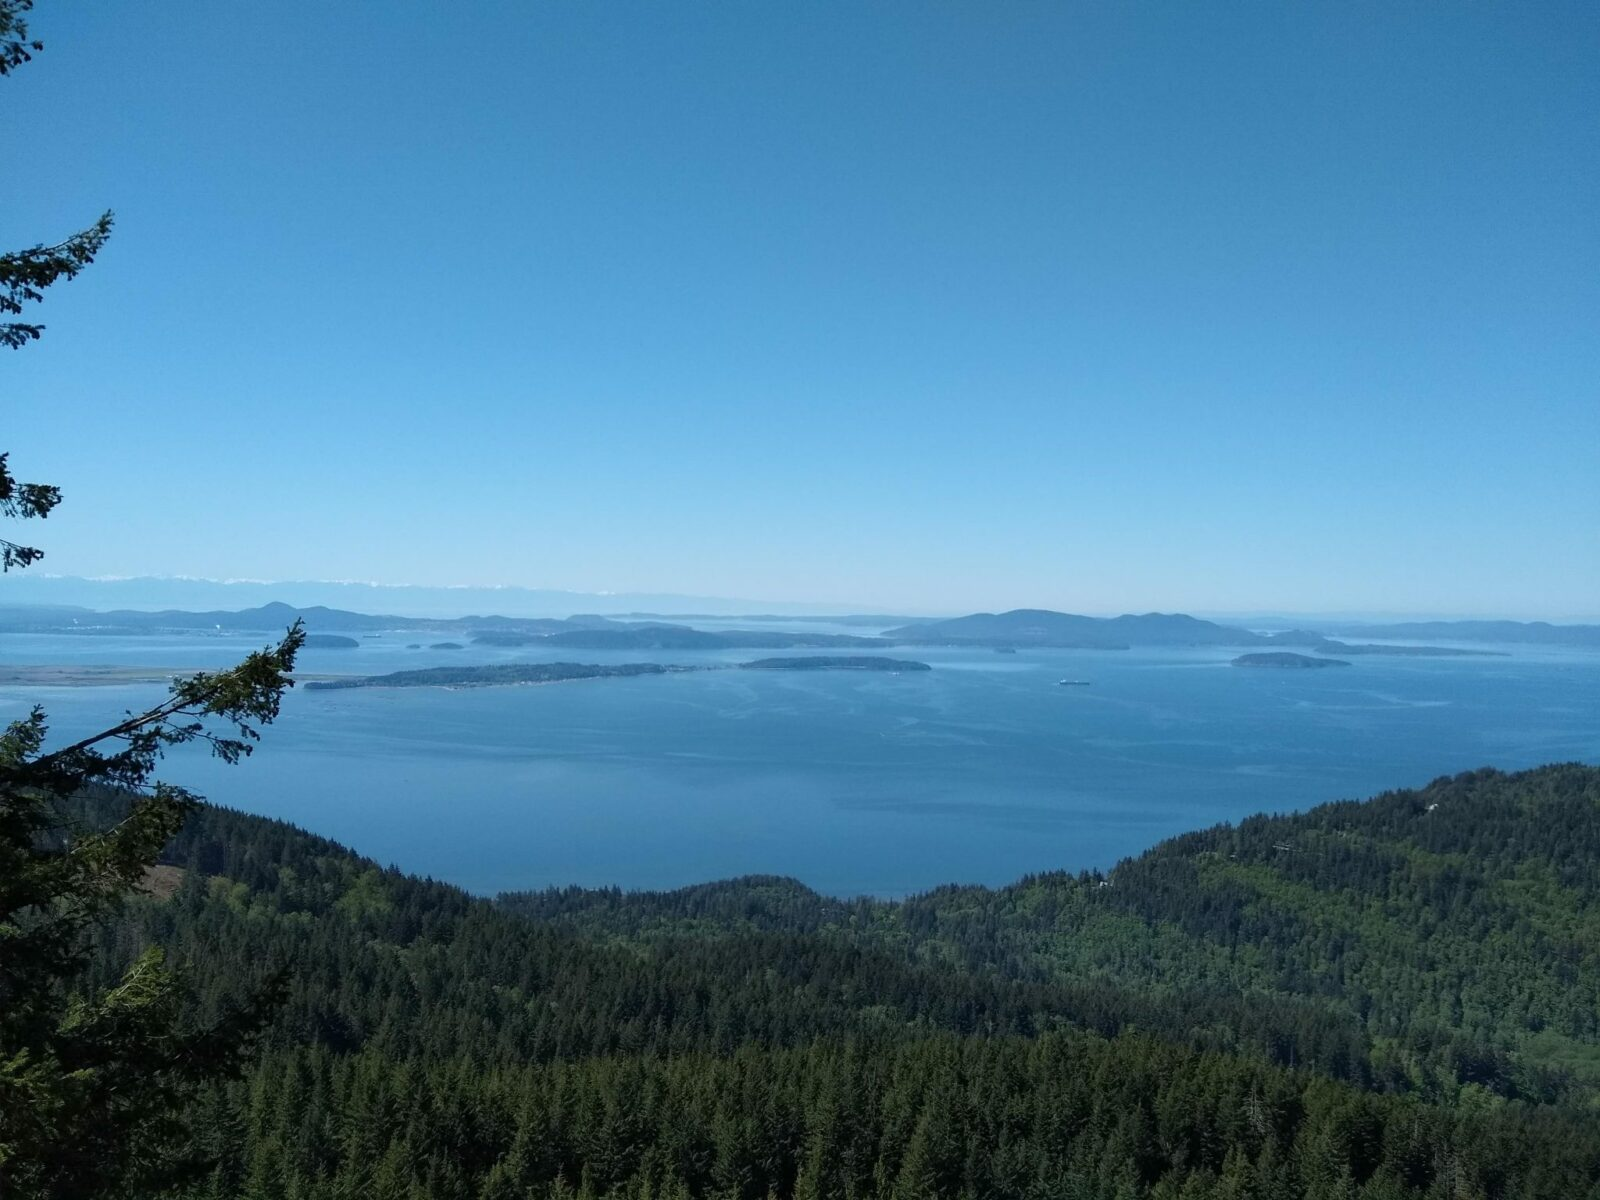 A view from a high place over water and distance islands on a sunny day